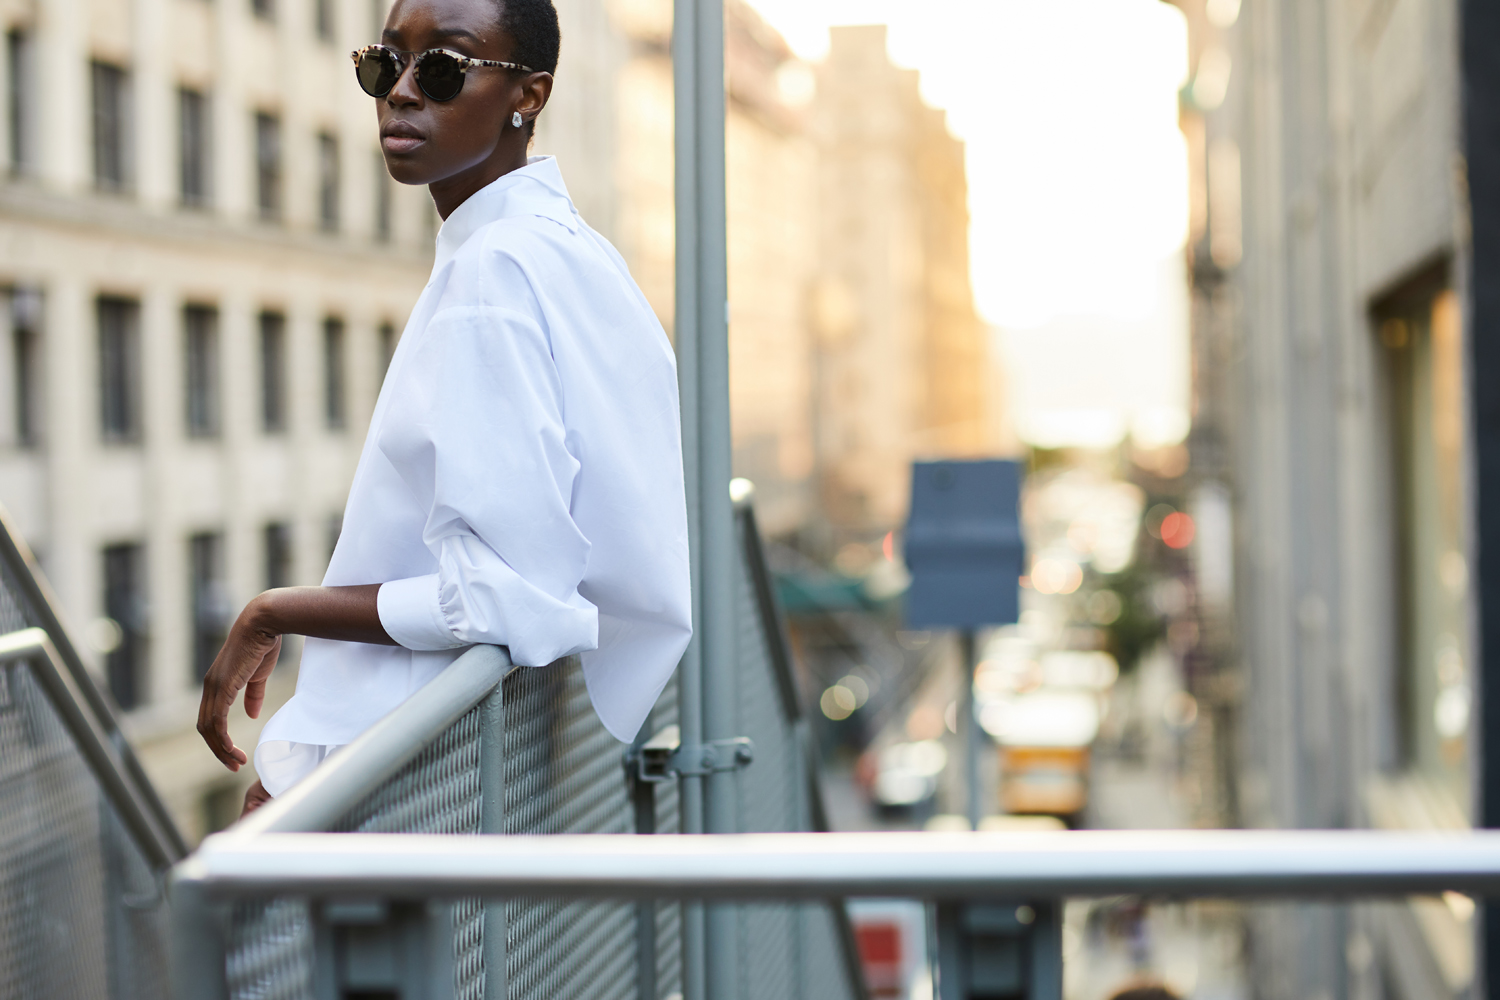 Sustainable fashion in nyc - Split Infinitive White Shirt Grammar Nyc Sustainable Fashion Organic Cotton